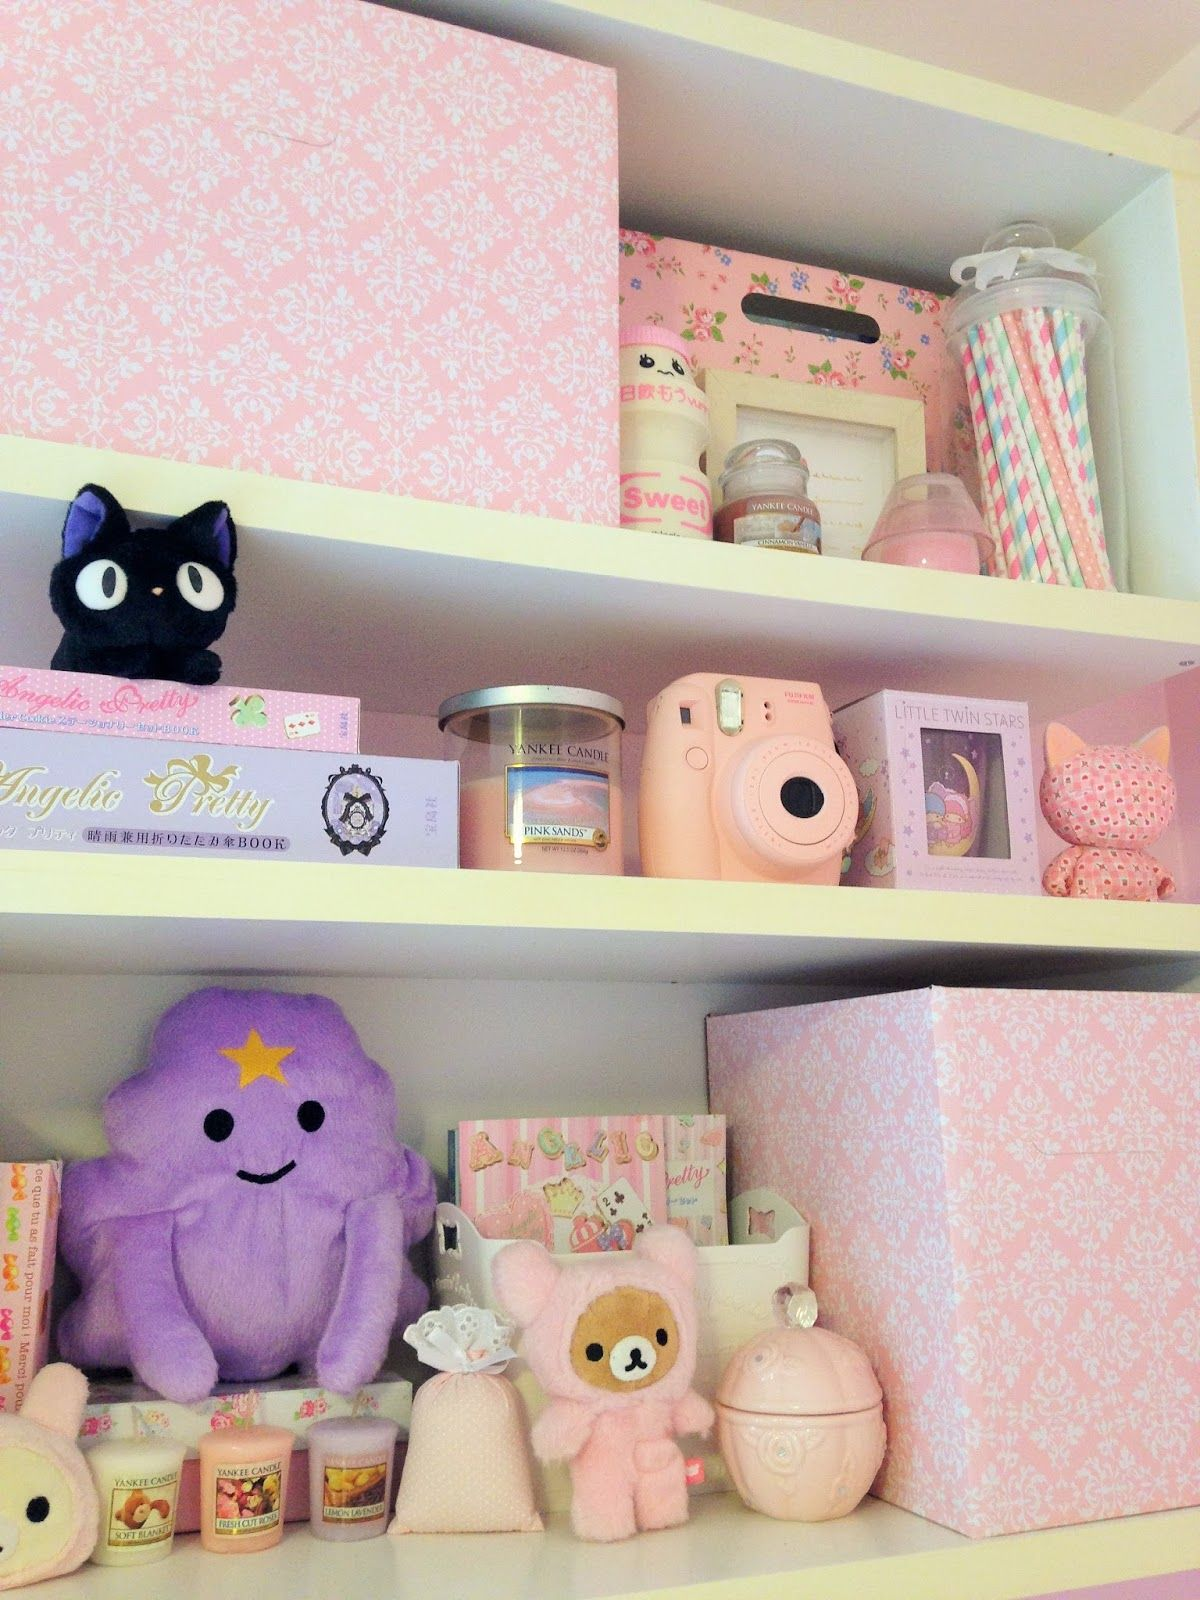 Kawaii Room Inspiration From Pasteljellybeans.blogspot.com